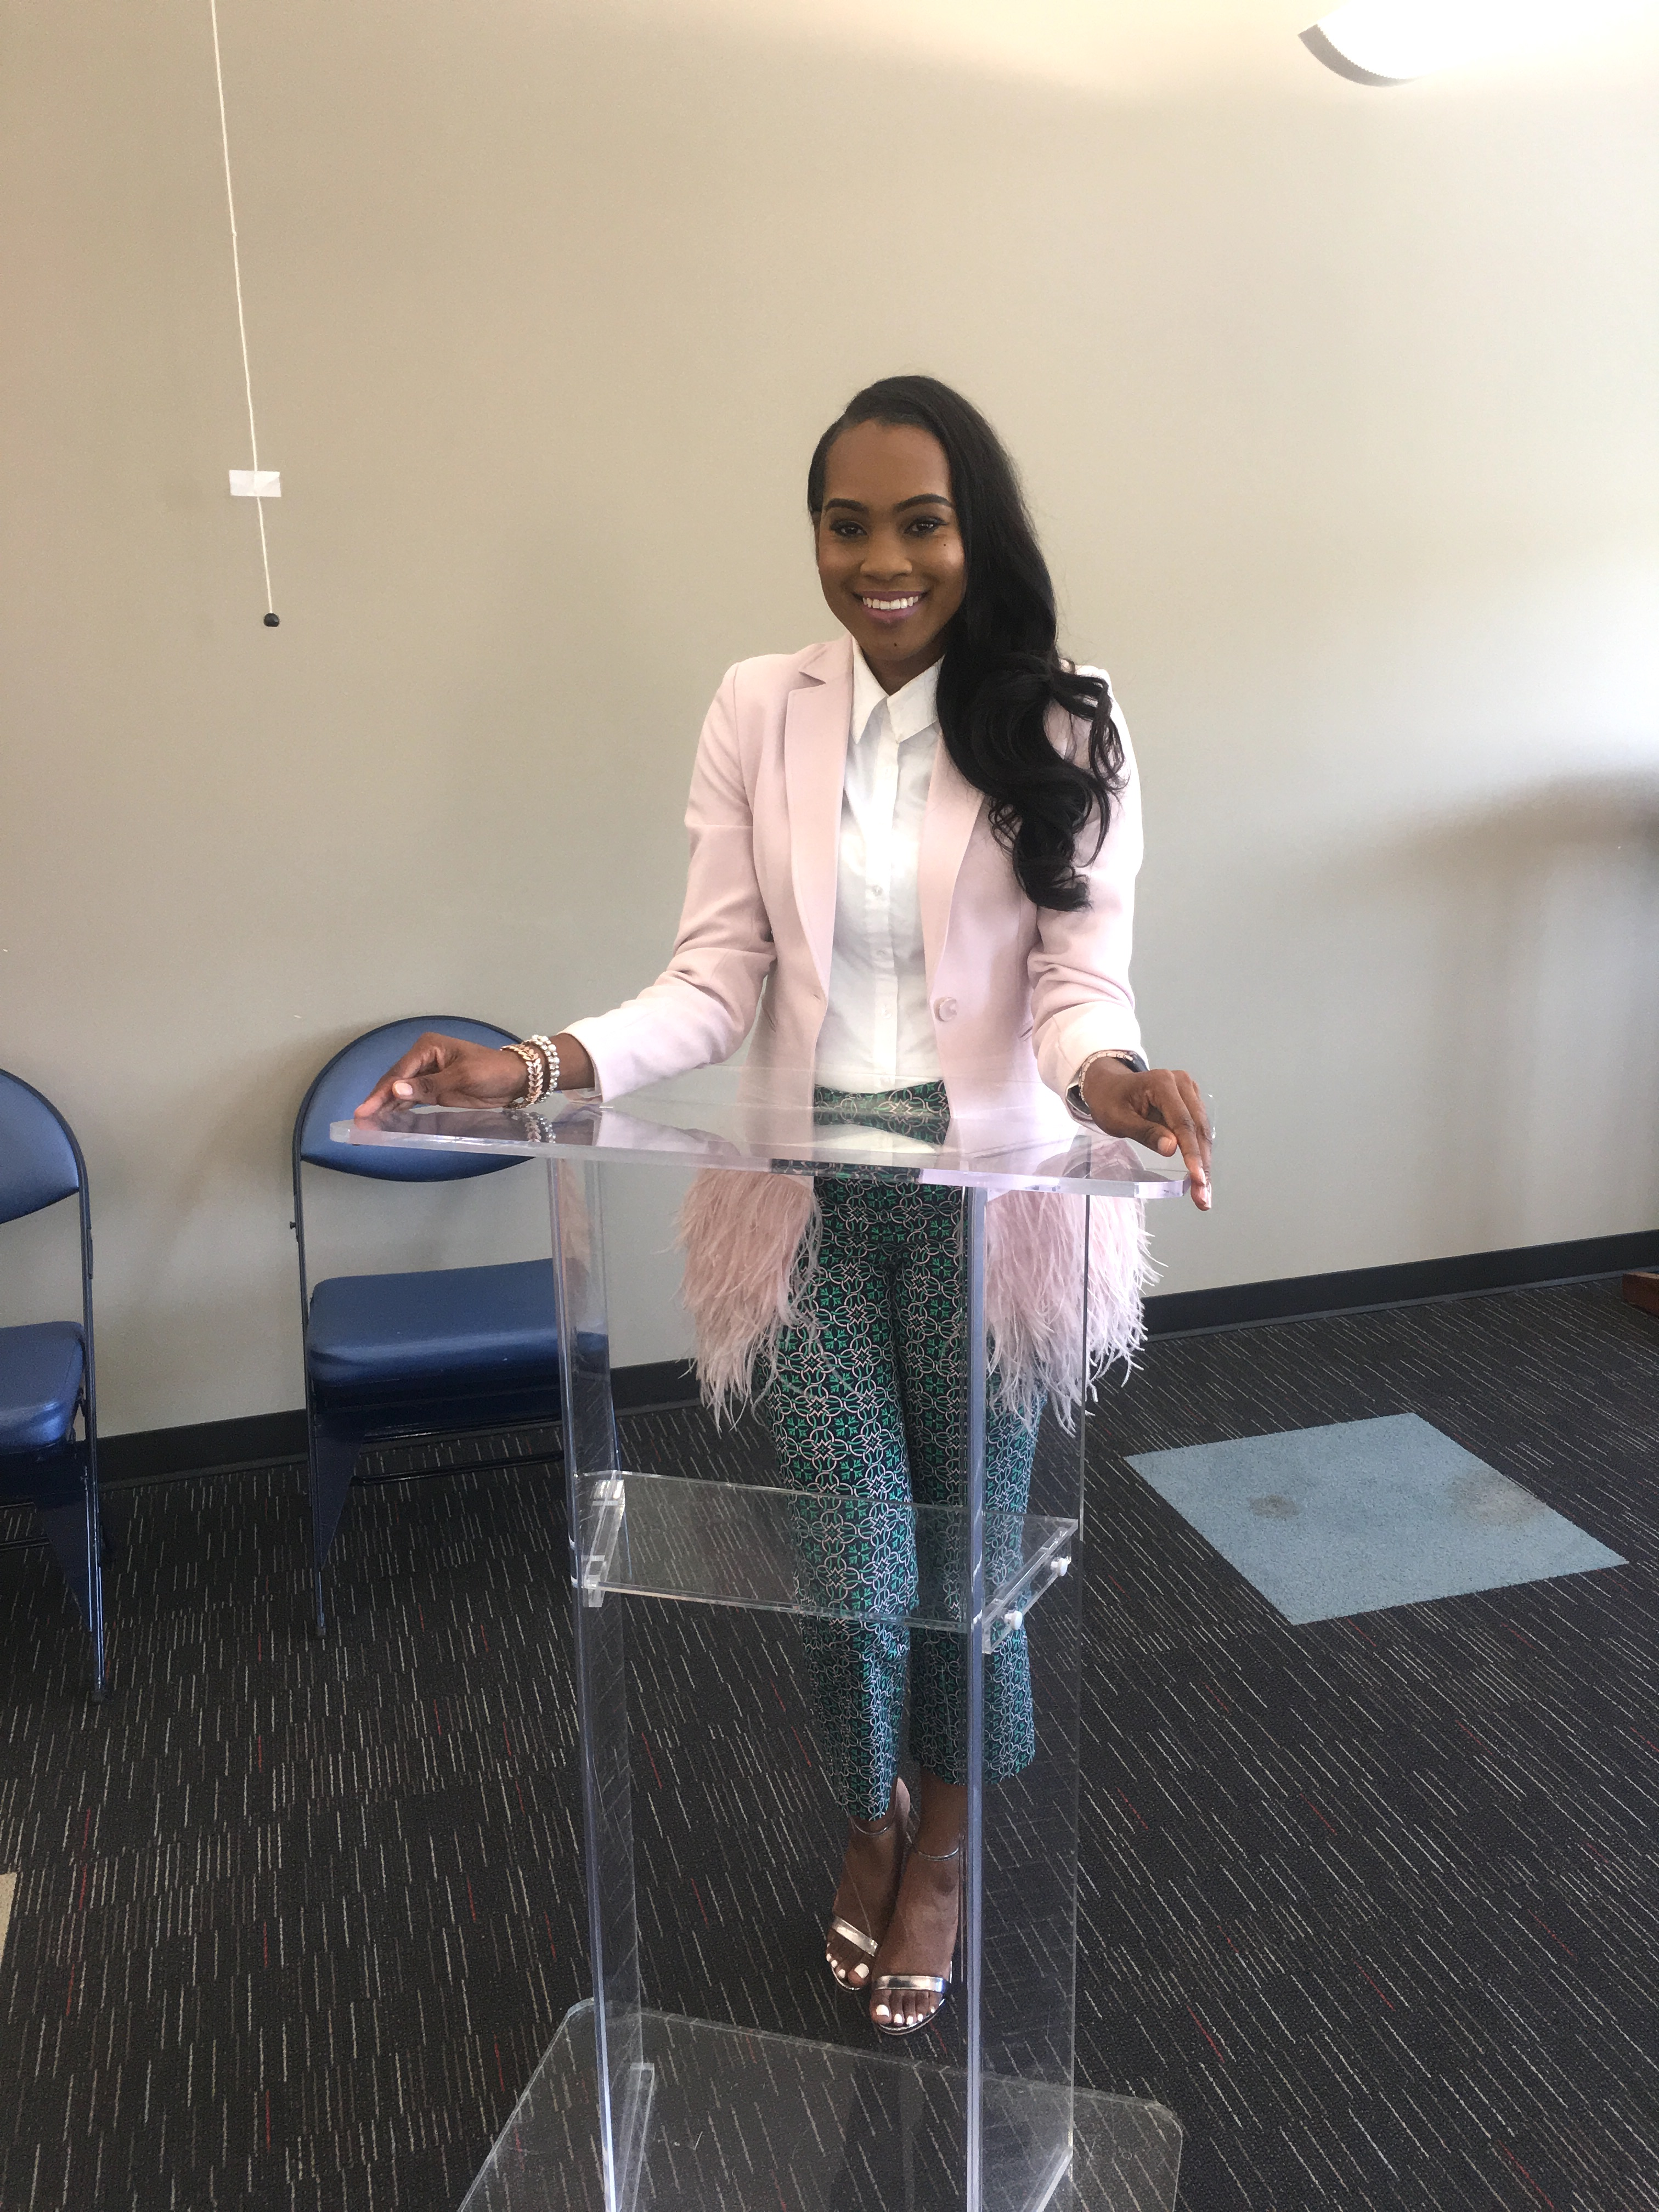 Style-Files-Thrifted-Printed-Jcrew-ankle-pants- white-thrifted-blouse-Pink-Gianni-Bini-Lizzy-Notch-Lapel-Collar-Feather-Trim-Solid-Crepe-Blazer-feather-hem-blazer-Birmingham-Association-of-black-journalist-college-panel-event-oohlalablog-8